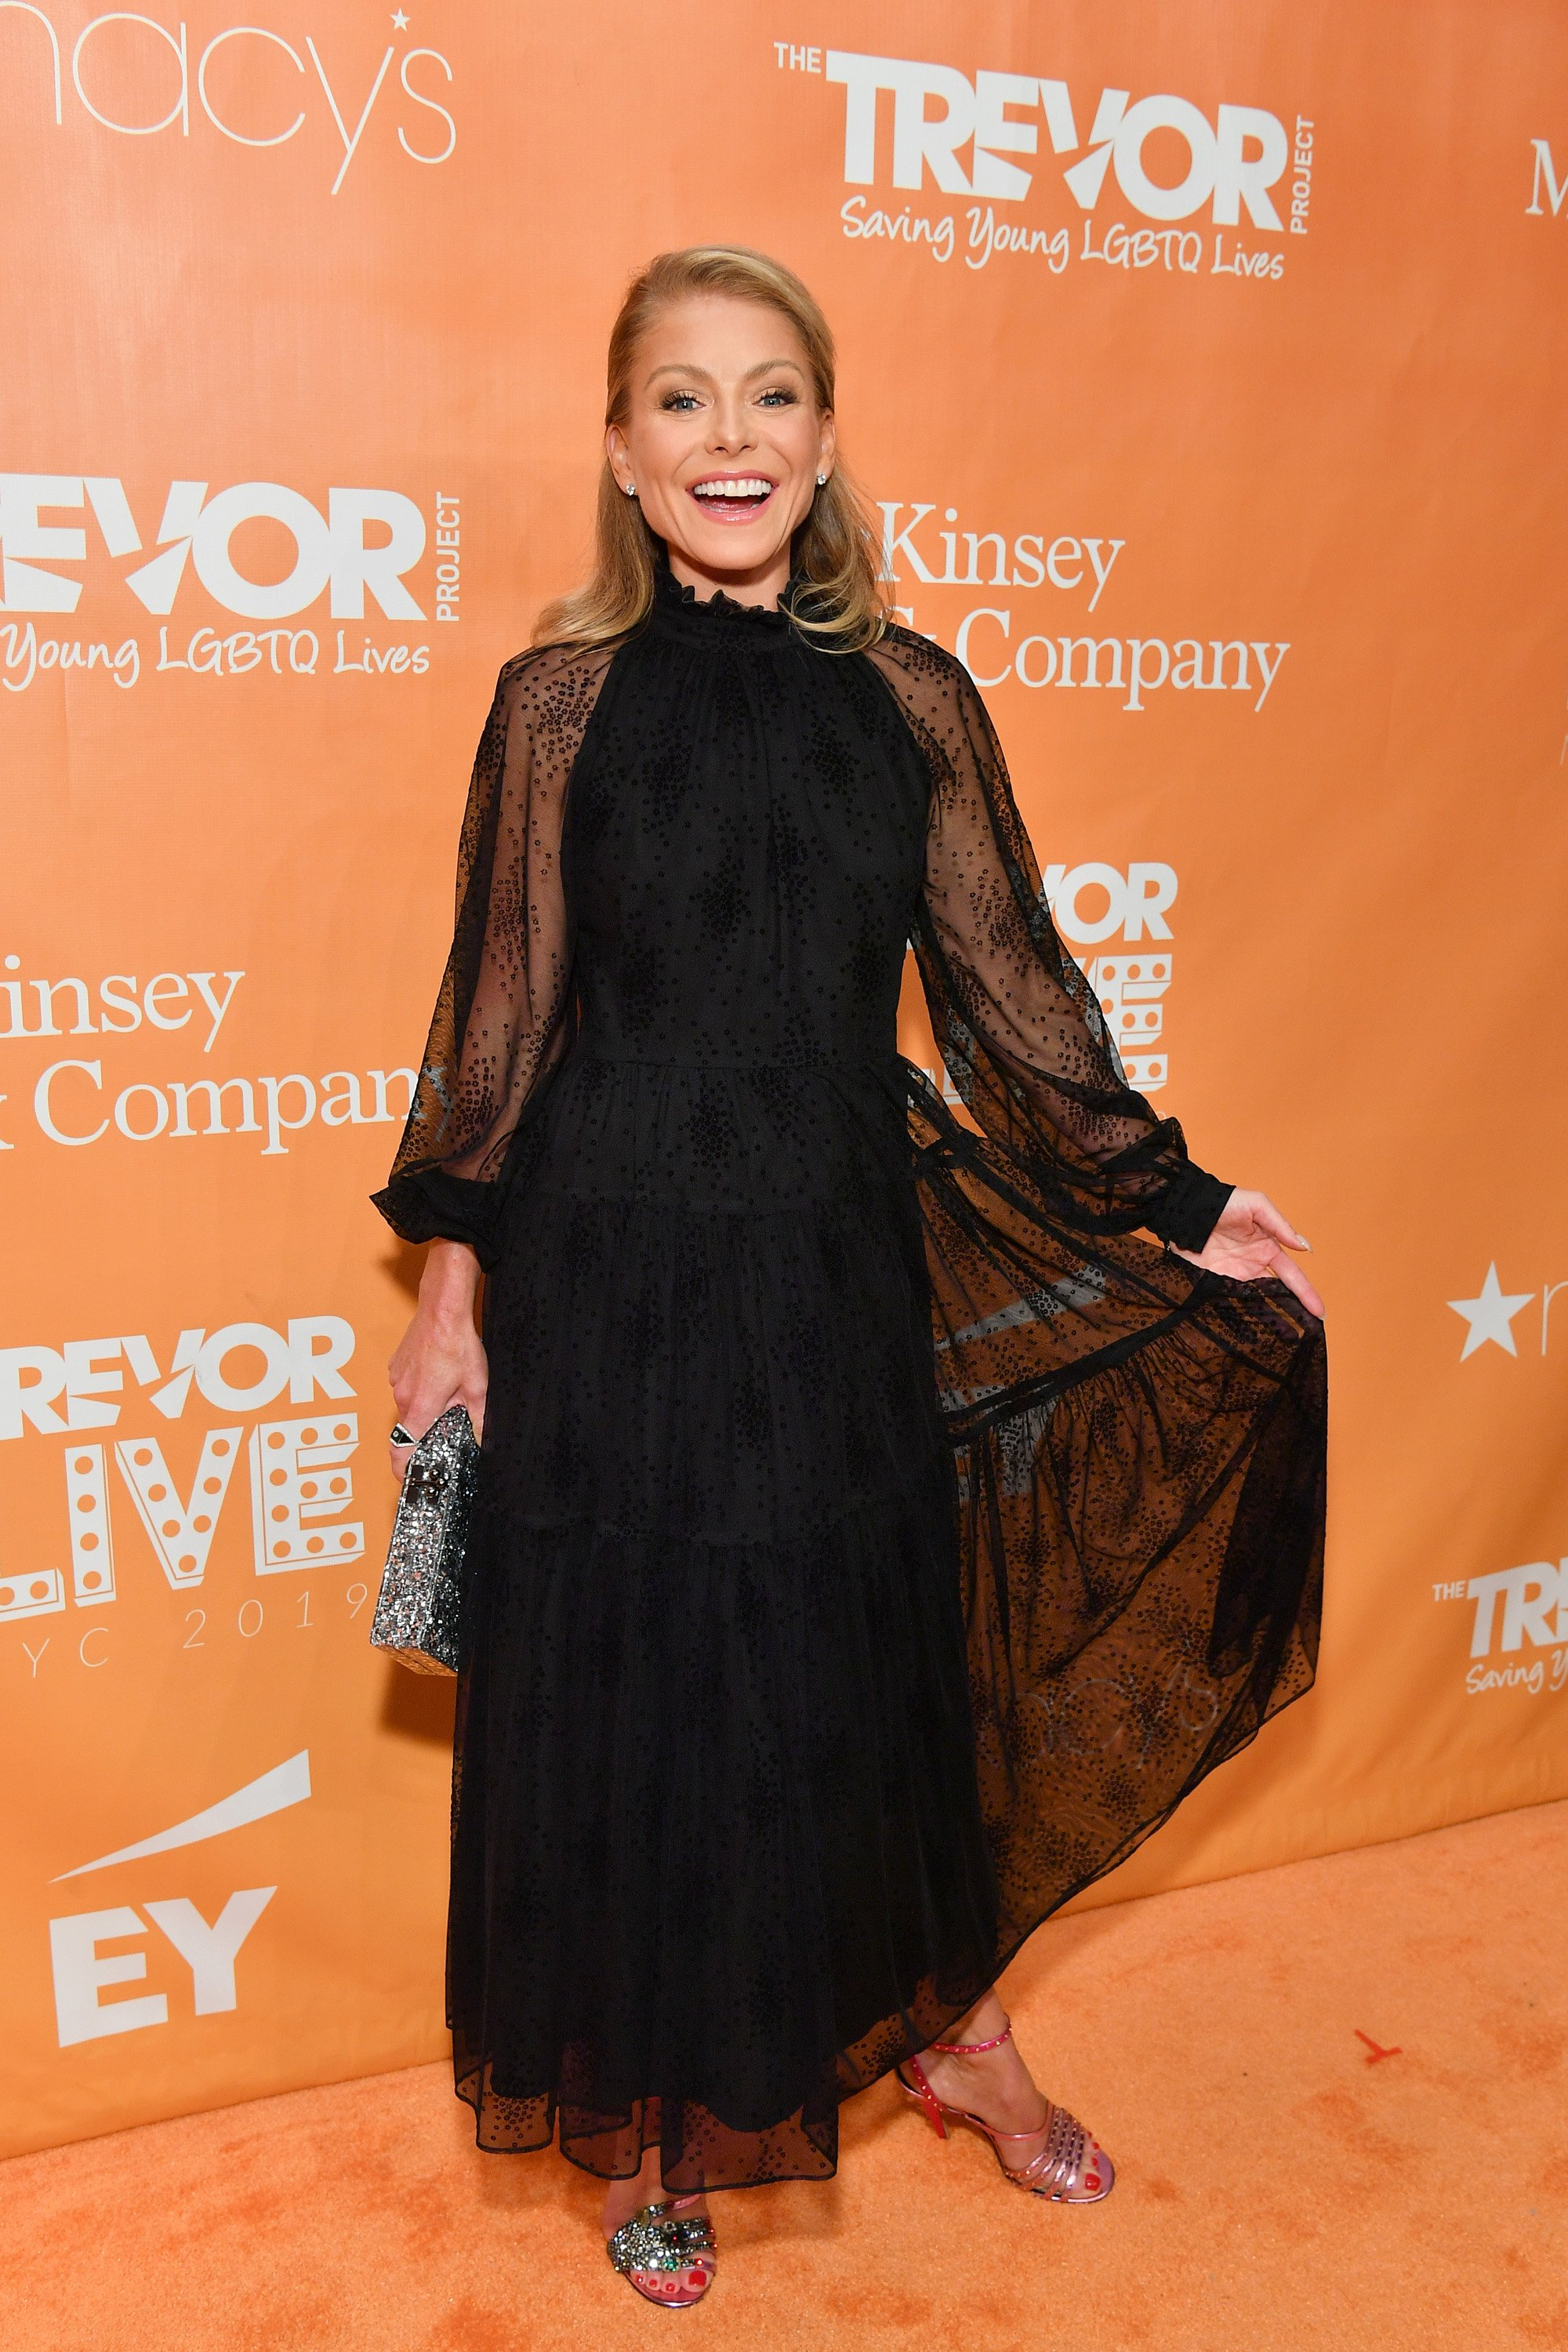 Kelly Ripa attends the TrevorLIVE New York Gala in New York City on June 17, 2019 | Photo: Getty Images